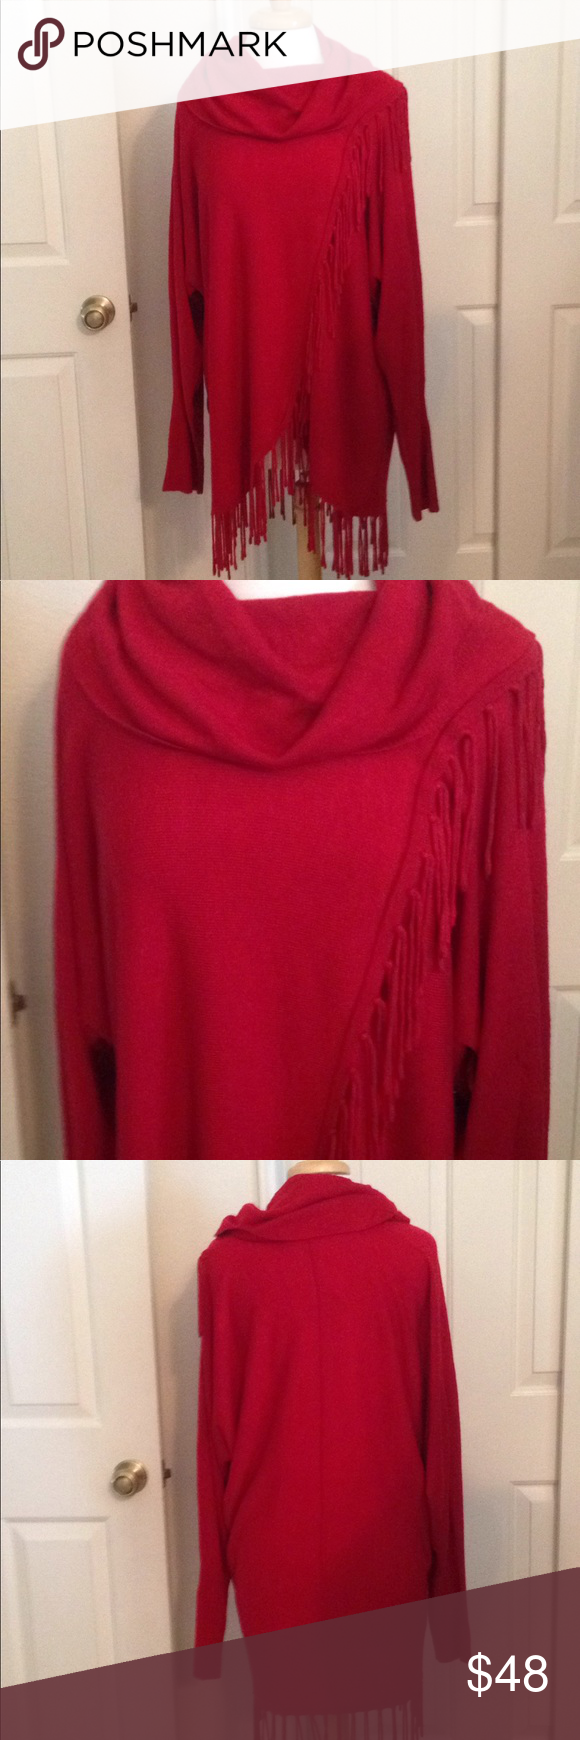 NWT sweater NWT | Red sweaters, Customer support and Delivery